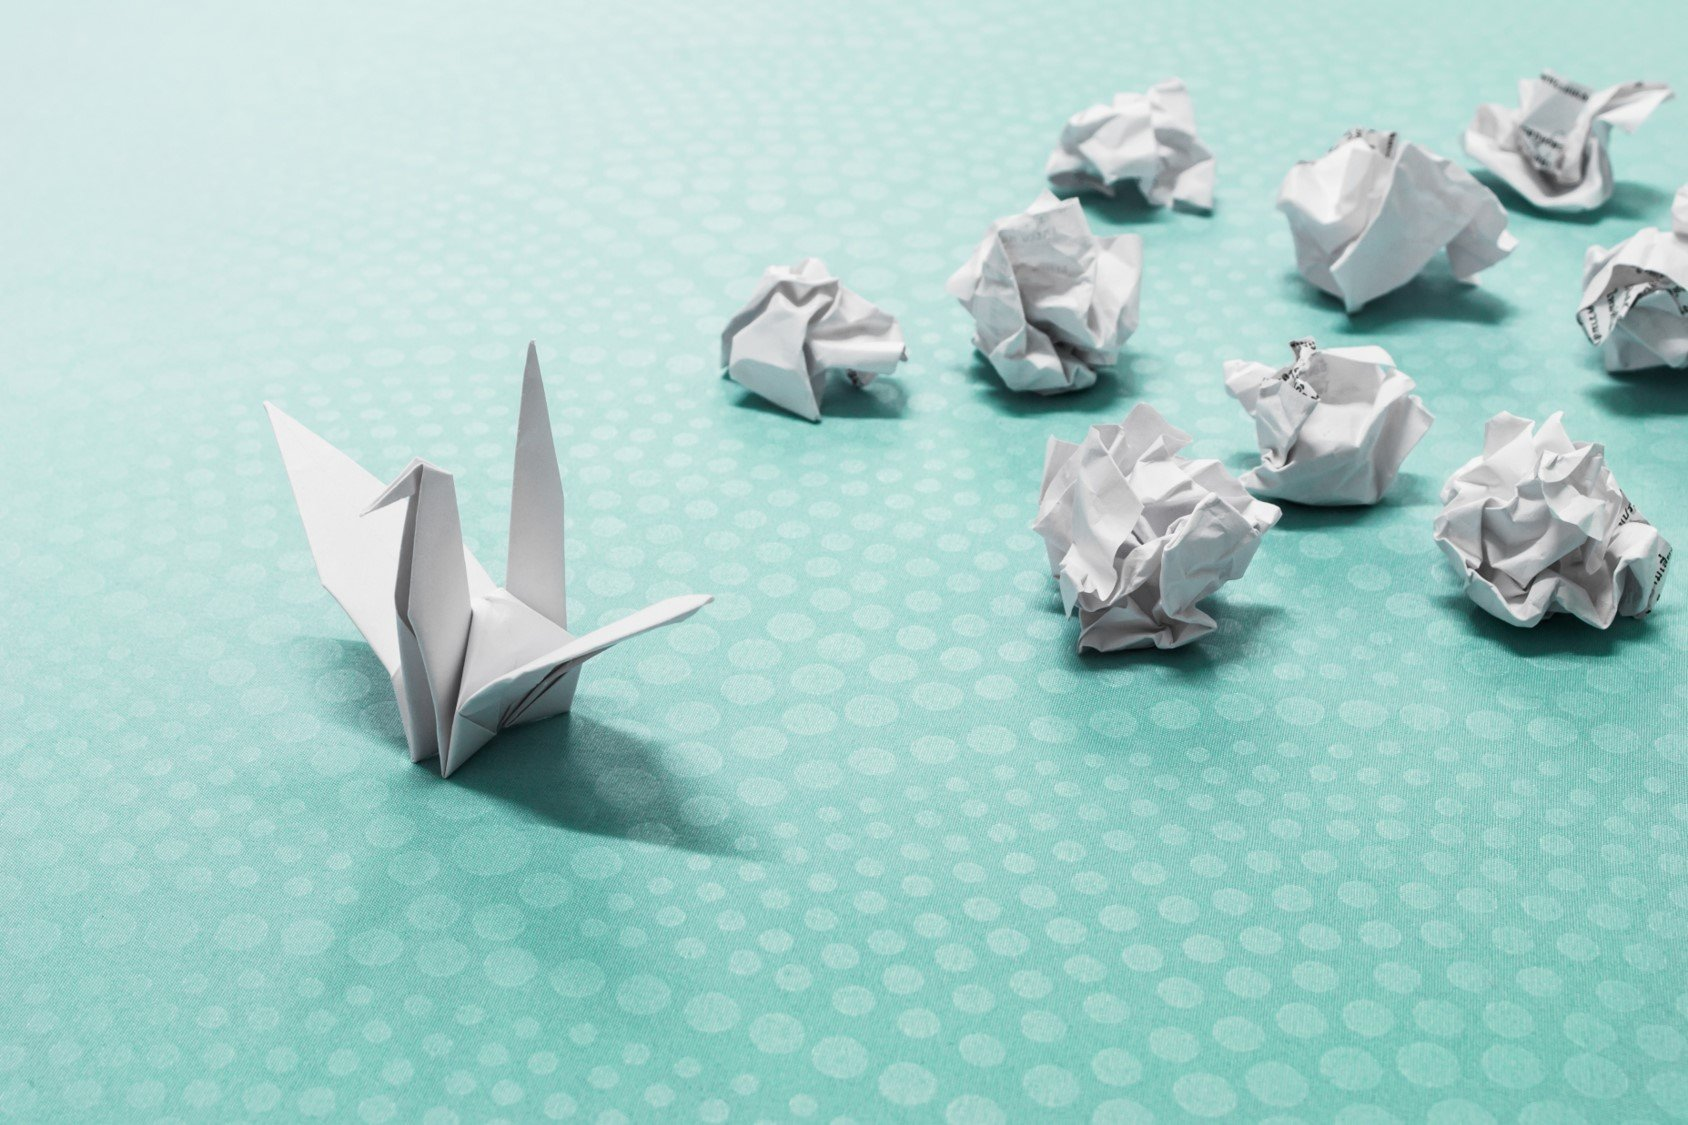 An origami swan leading a pack of screwed up balls of paper